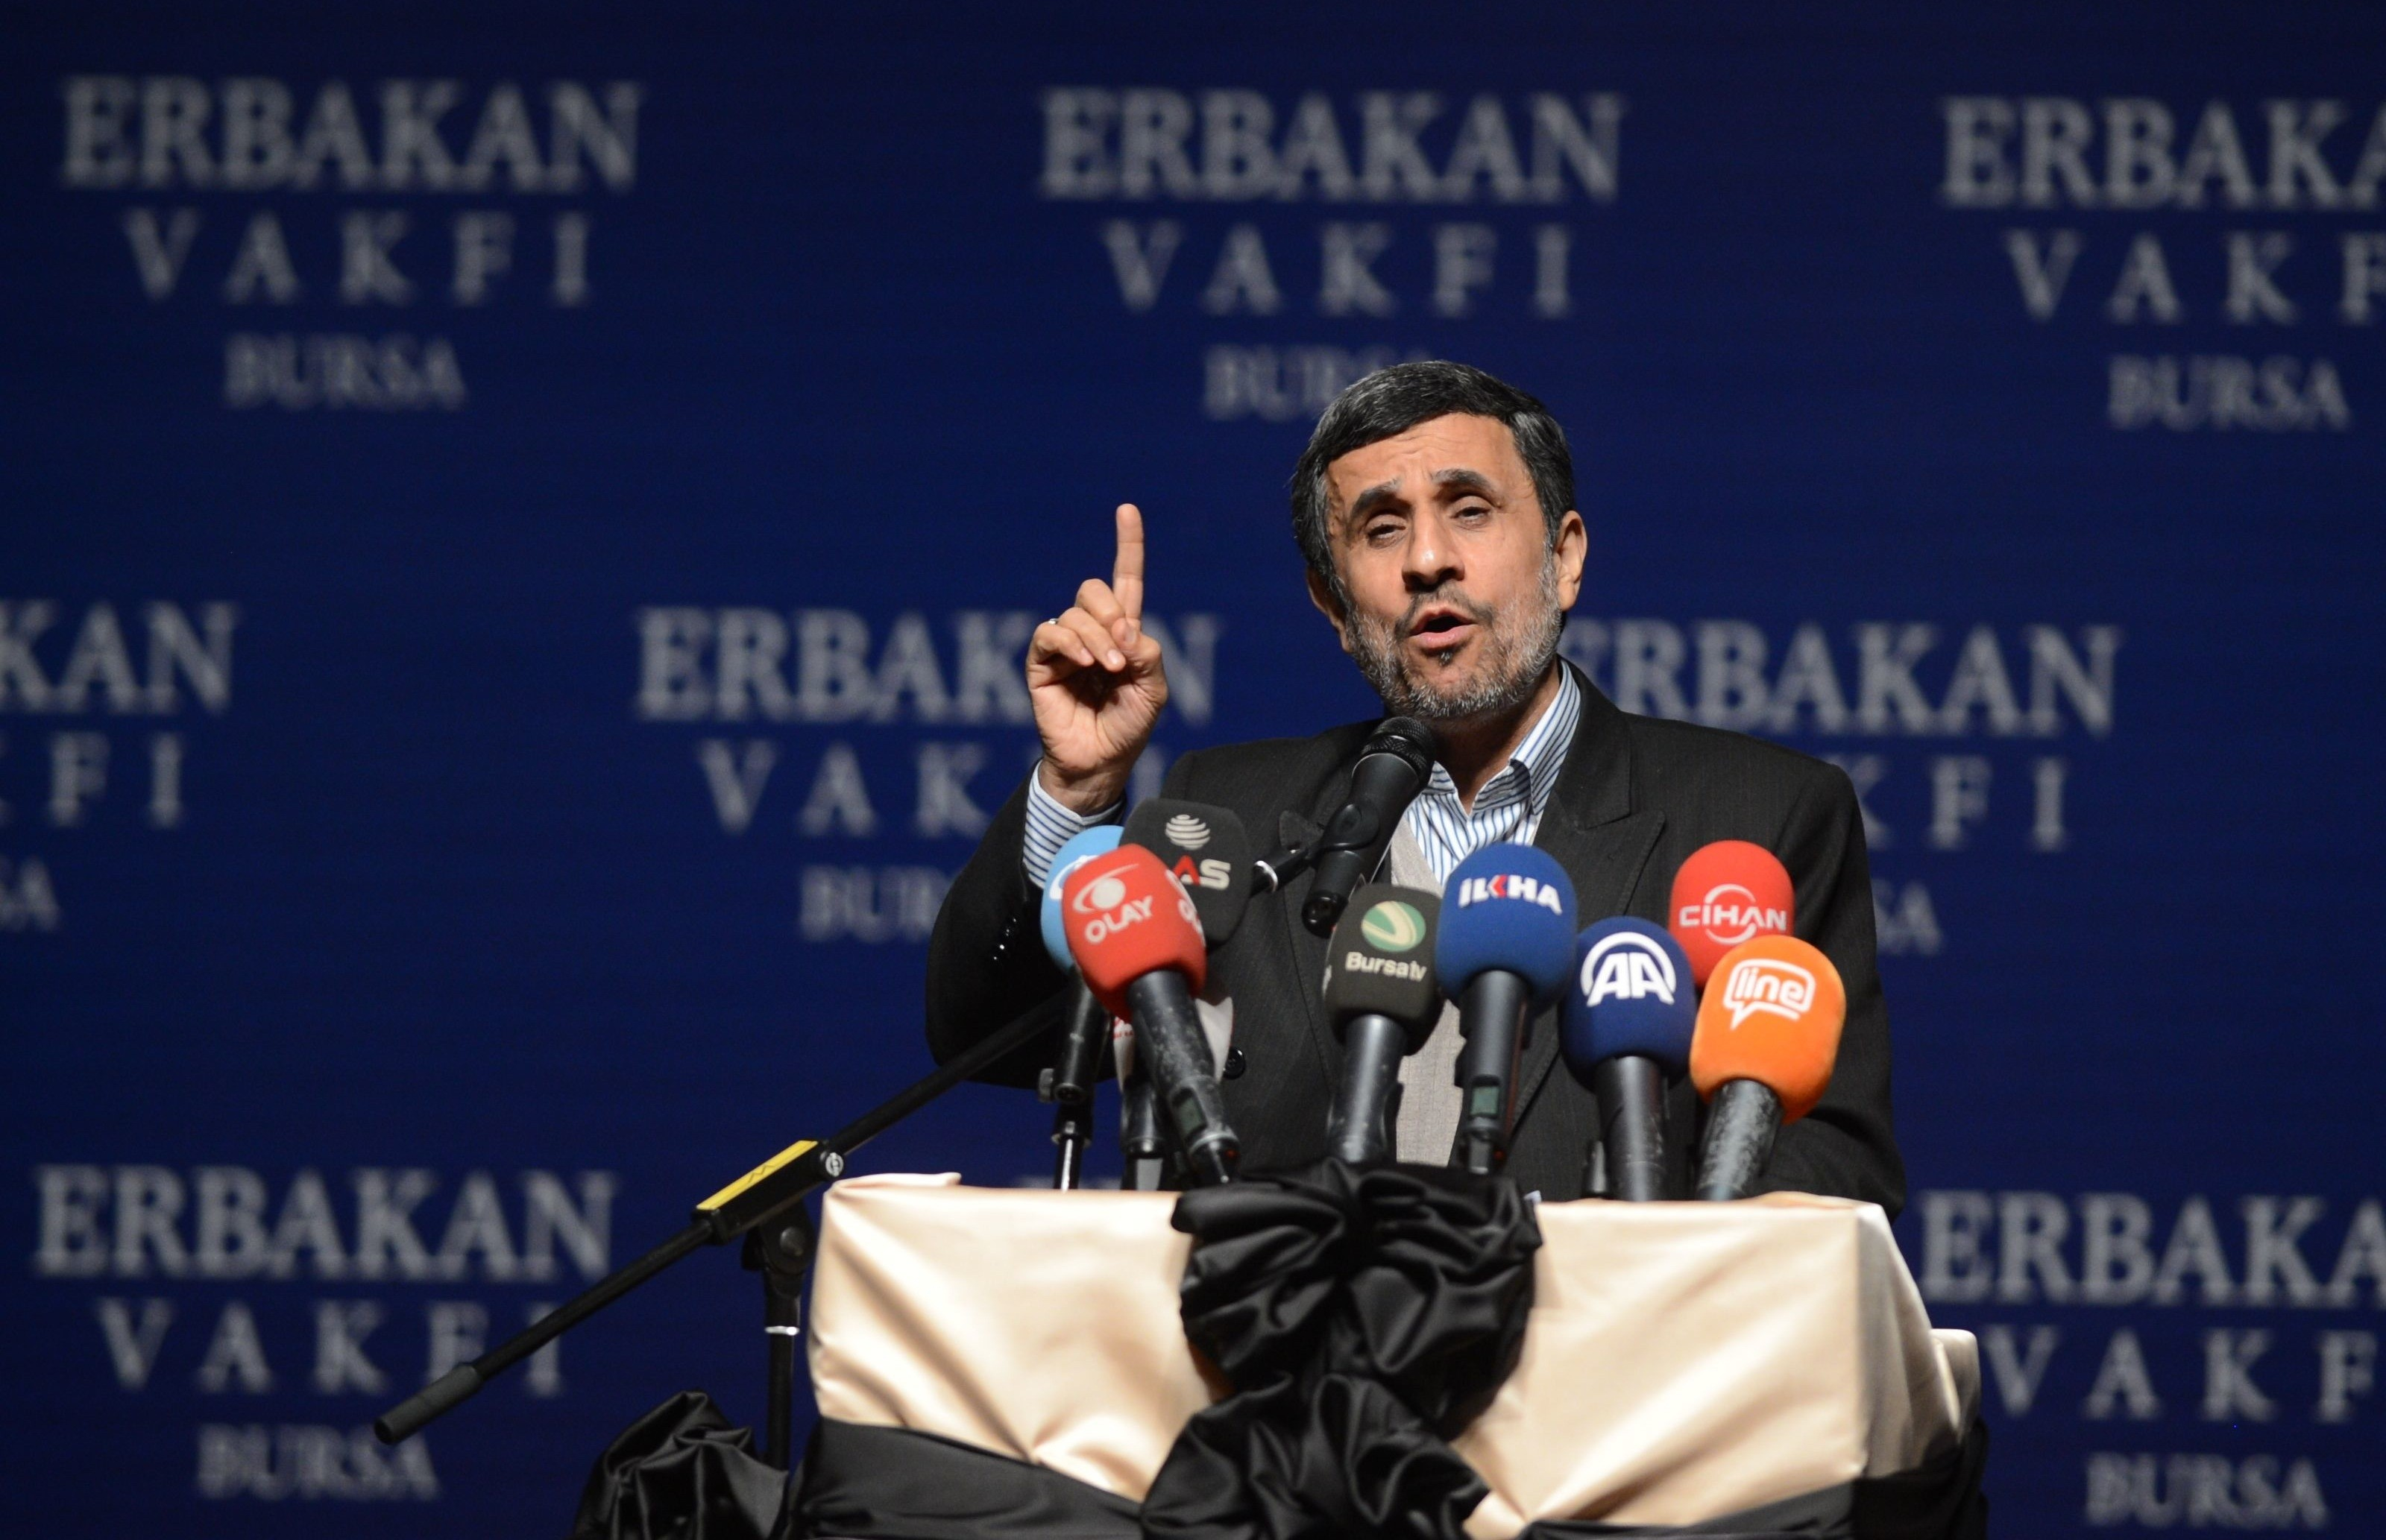 Former Iranian President Mahmoud Ahmadinejad makes a speech during commemorating for the late Prime Minister Necmettin Erbakan organized by Erbakan Association in Bursa, Turkey, on Feb. 27, 2015